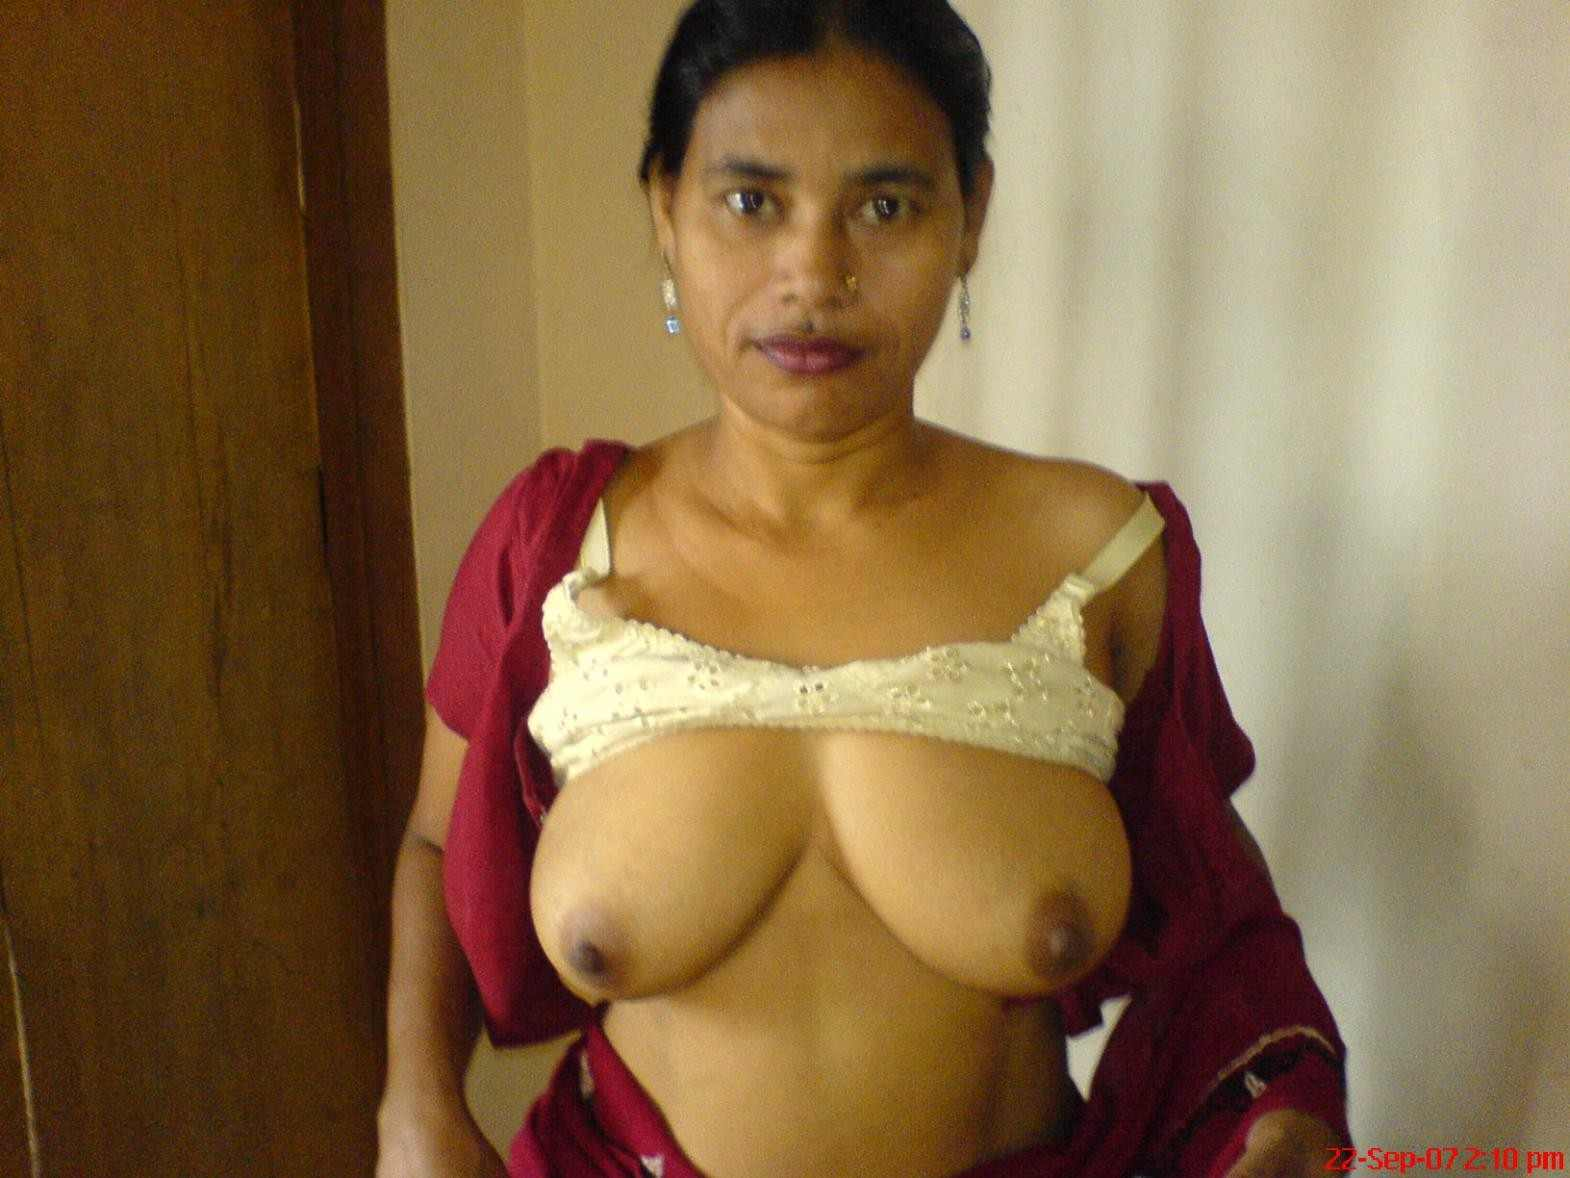 Nudes Photos 2014: Indian aunties